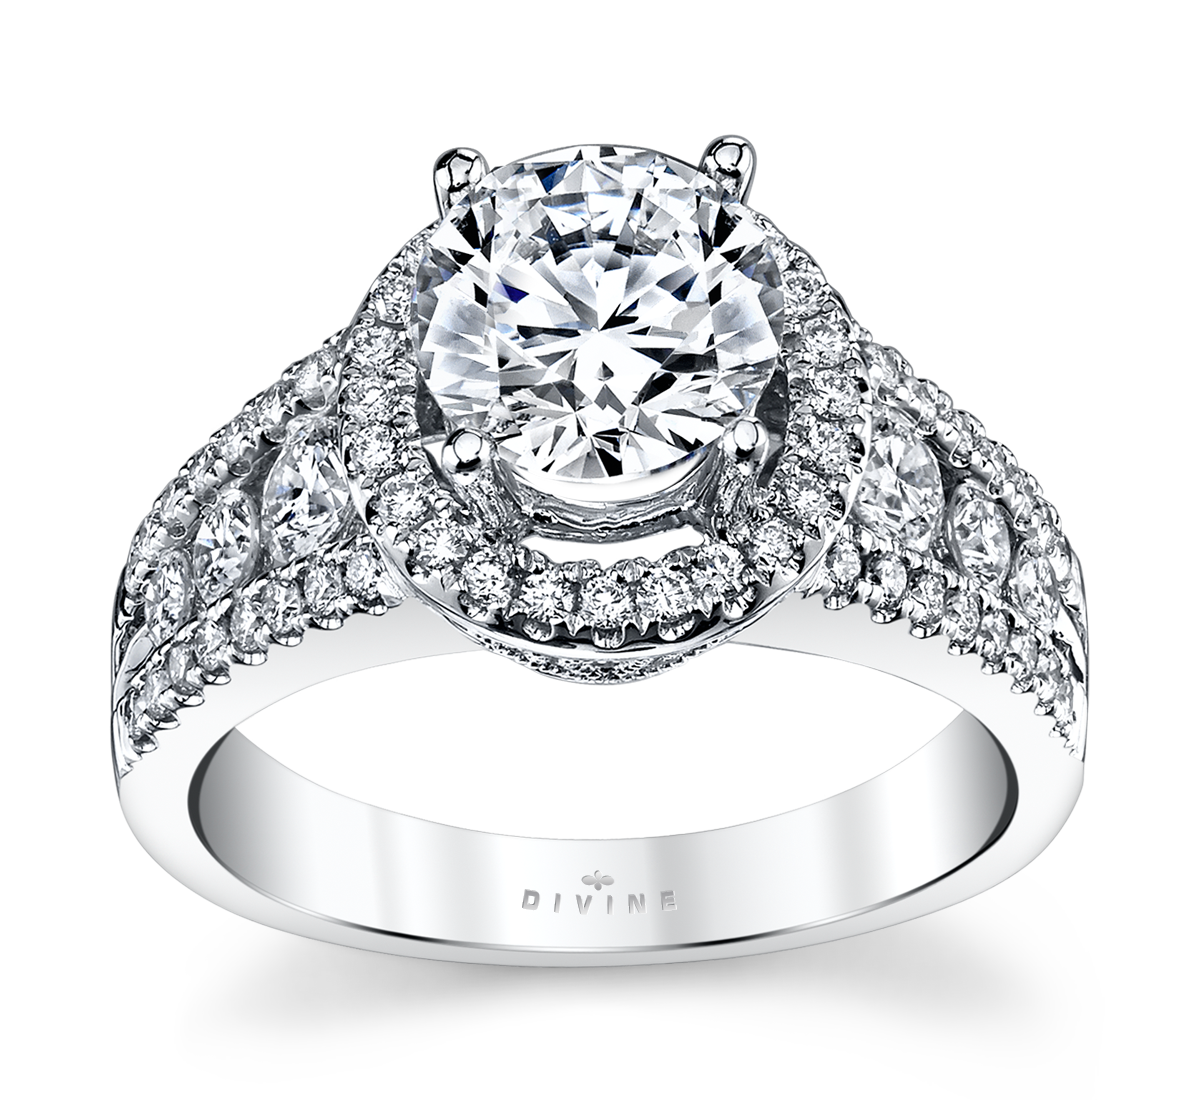 14K White Gold Halo Diamond Engagement Ring Setting 3/4 Cttw.